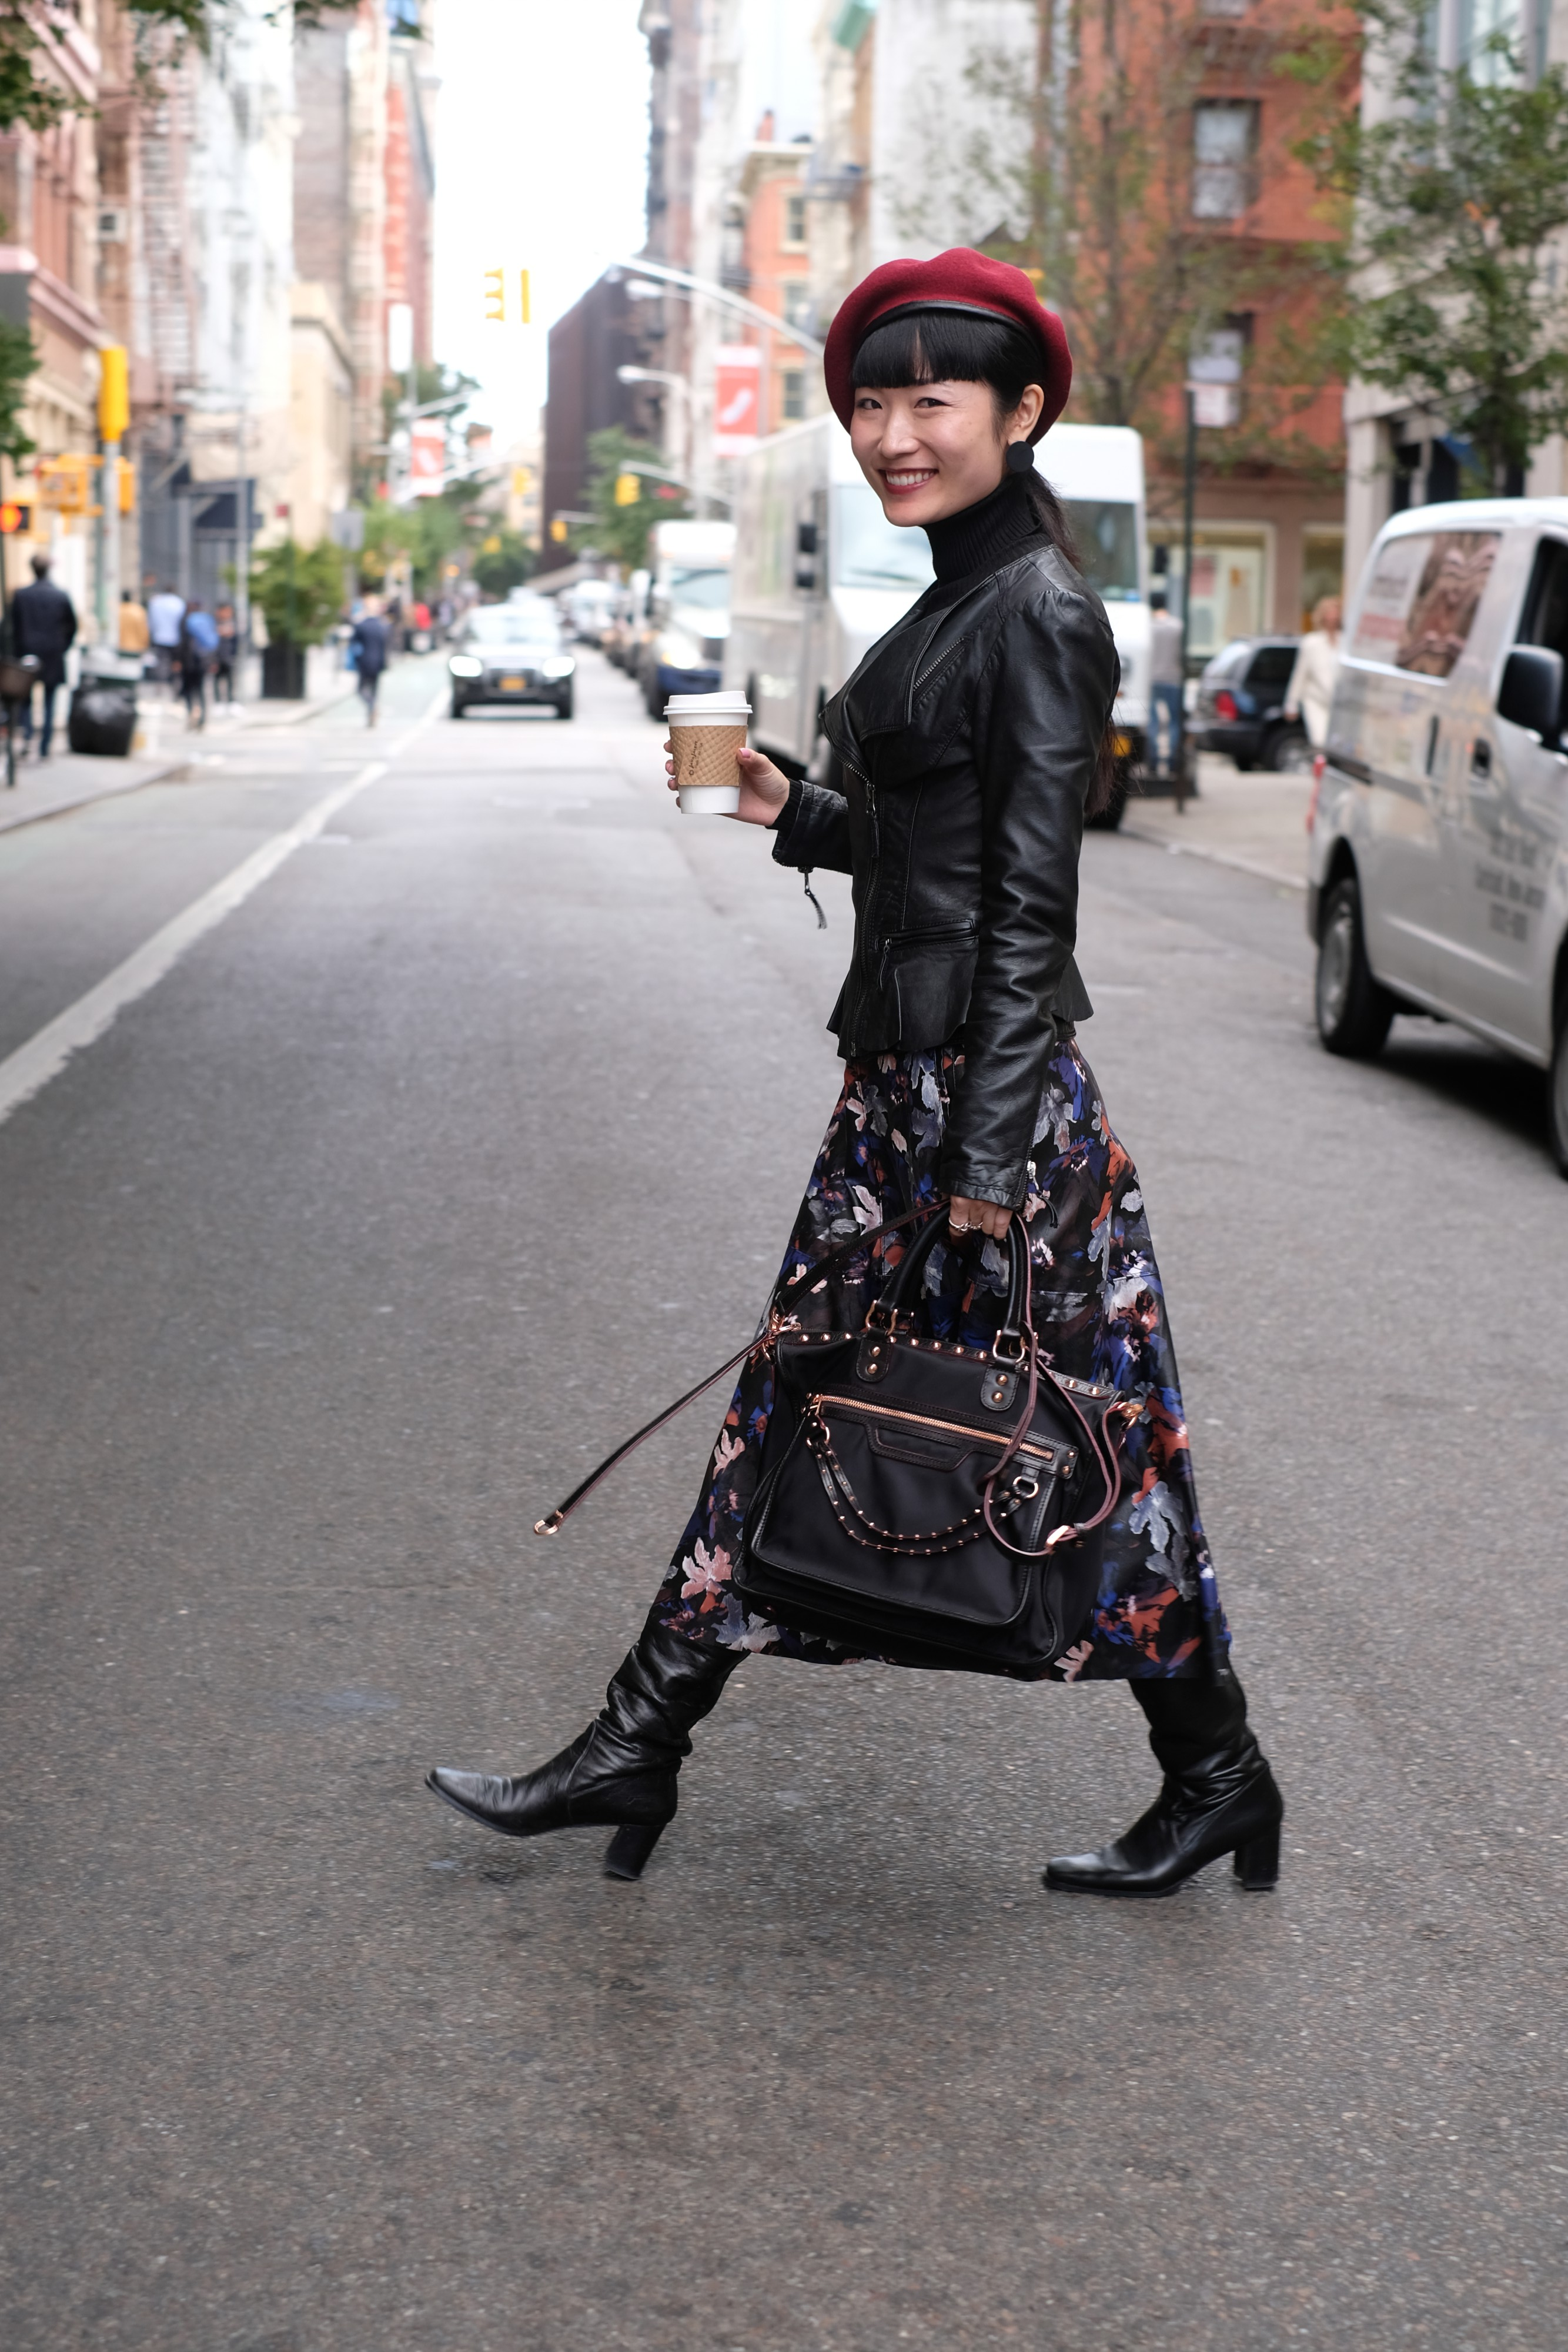 Japanese girl in floral dress and black jacket